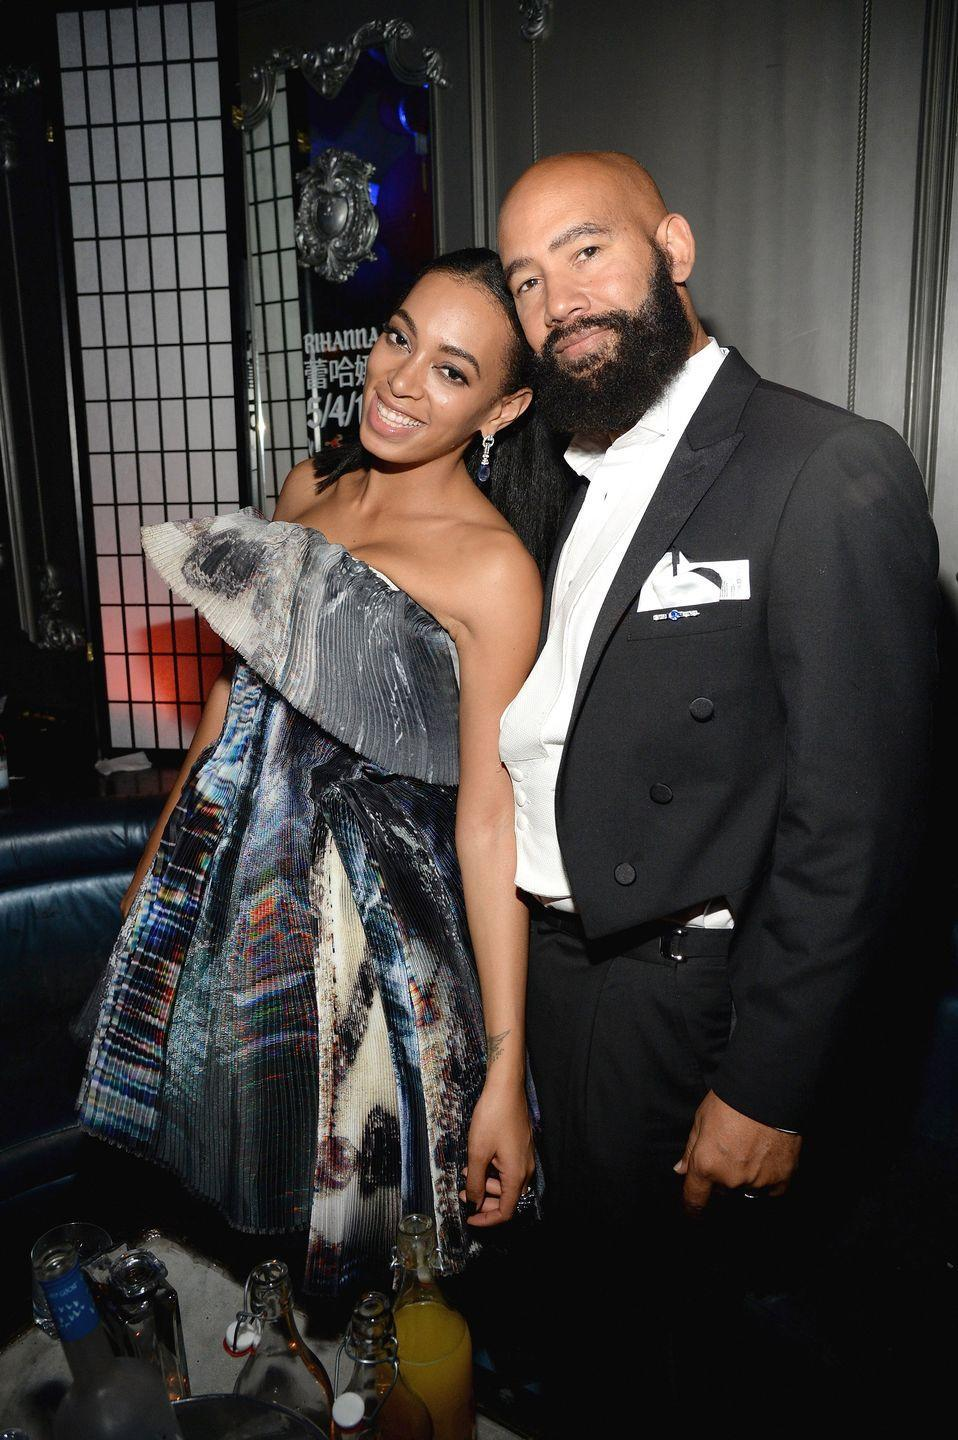 "<p>The Knowles sisters have surely mastered the art of surprise. The youngest Knowles began dating her now-husband Alan Ferguson in 2008 before the pair tied the knot it a private ceremony in 2014. The stylish couple's all-ivory wedding photos went viral. However, she <a href=""https://www.elle.com/uk/life-and-culture/a29681582/solange-husband-alan-ferguson-separate/"" rel=""nofollow noopener"" target=""_blank"" data-ylk=""slk:announced their divorce"" class=""link rapid-noclick-resp"">announced their divorce</a> in November 2019.</p>"